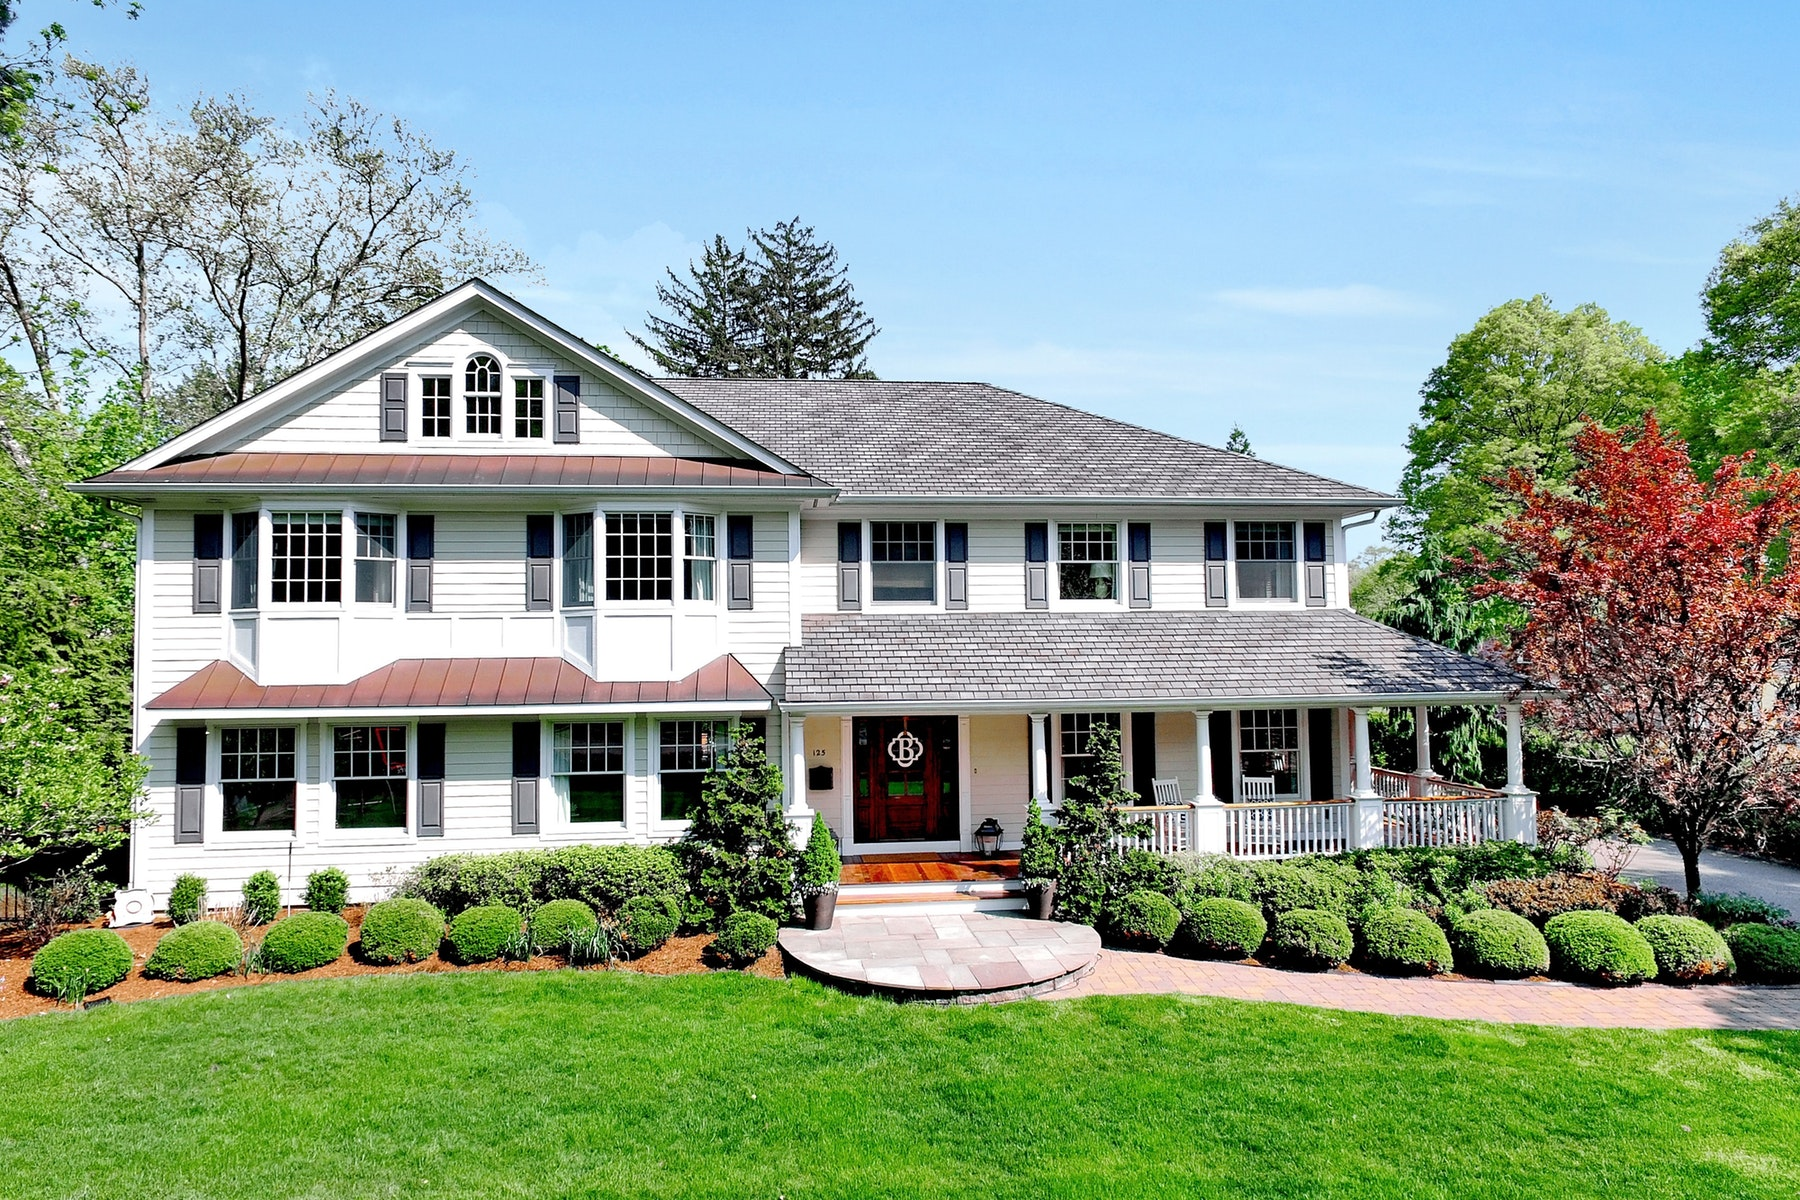 Single Family Home for Sale at Style and Comfort! 125 Melrose Place, Ridgewood, New Jersey 07450 United States